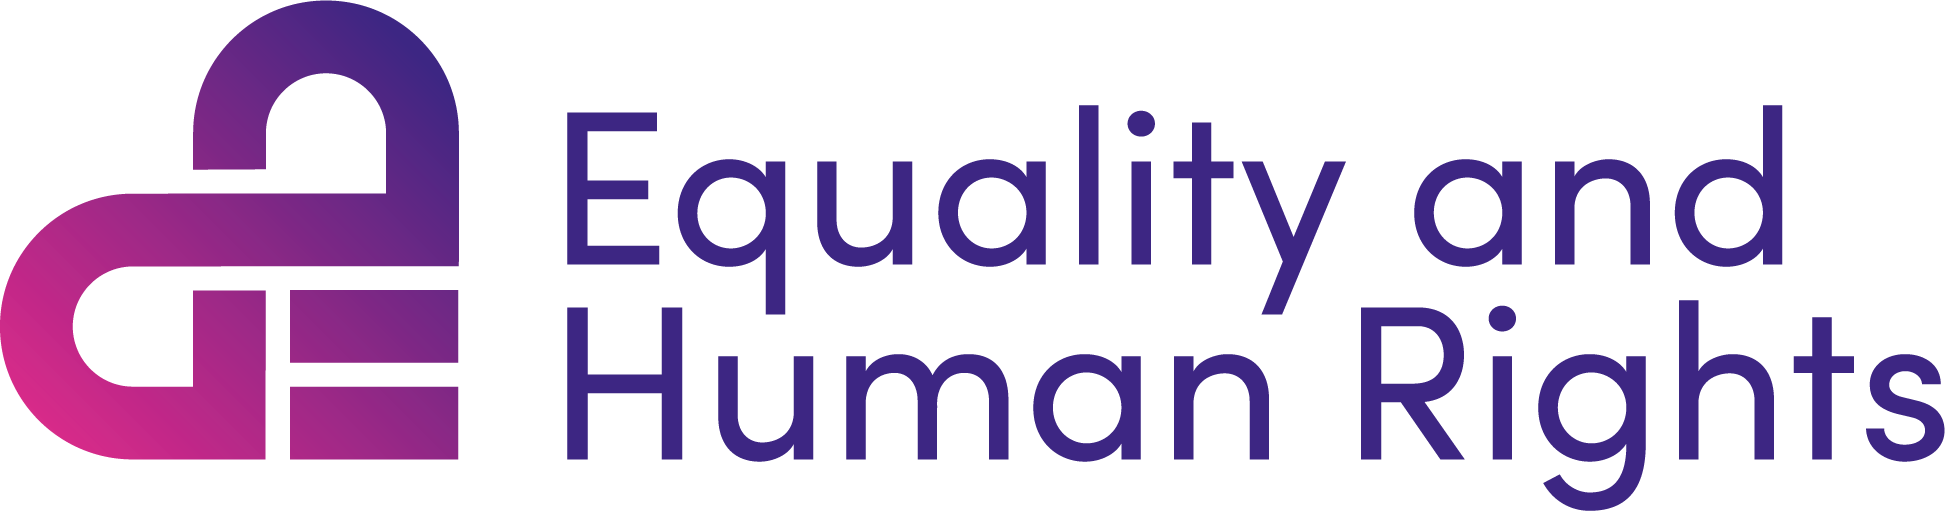 Equality and Human Rights